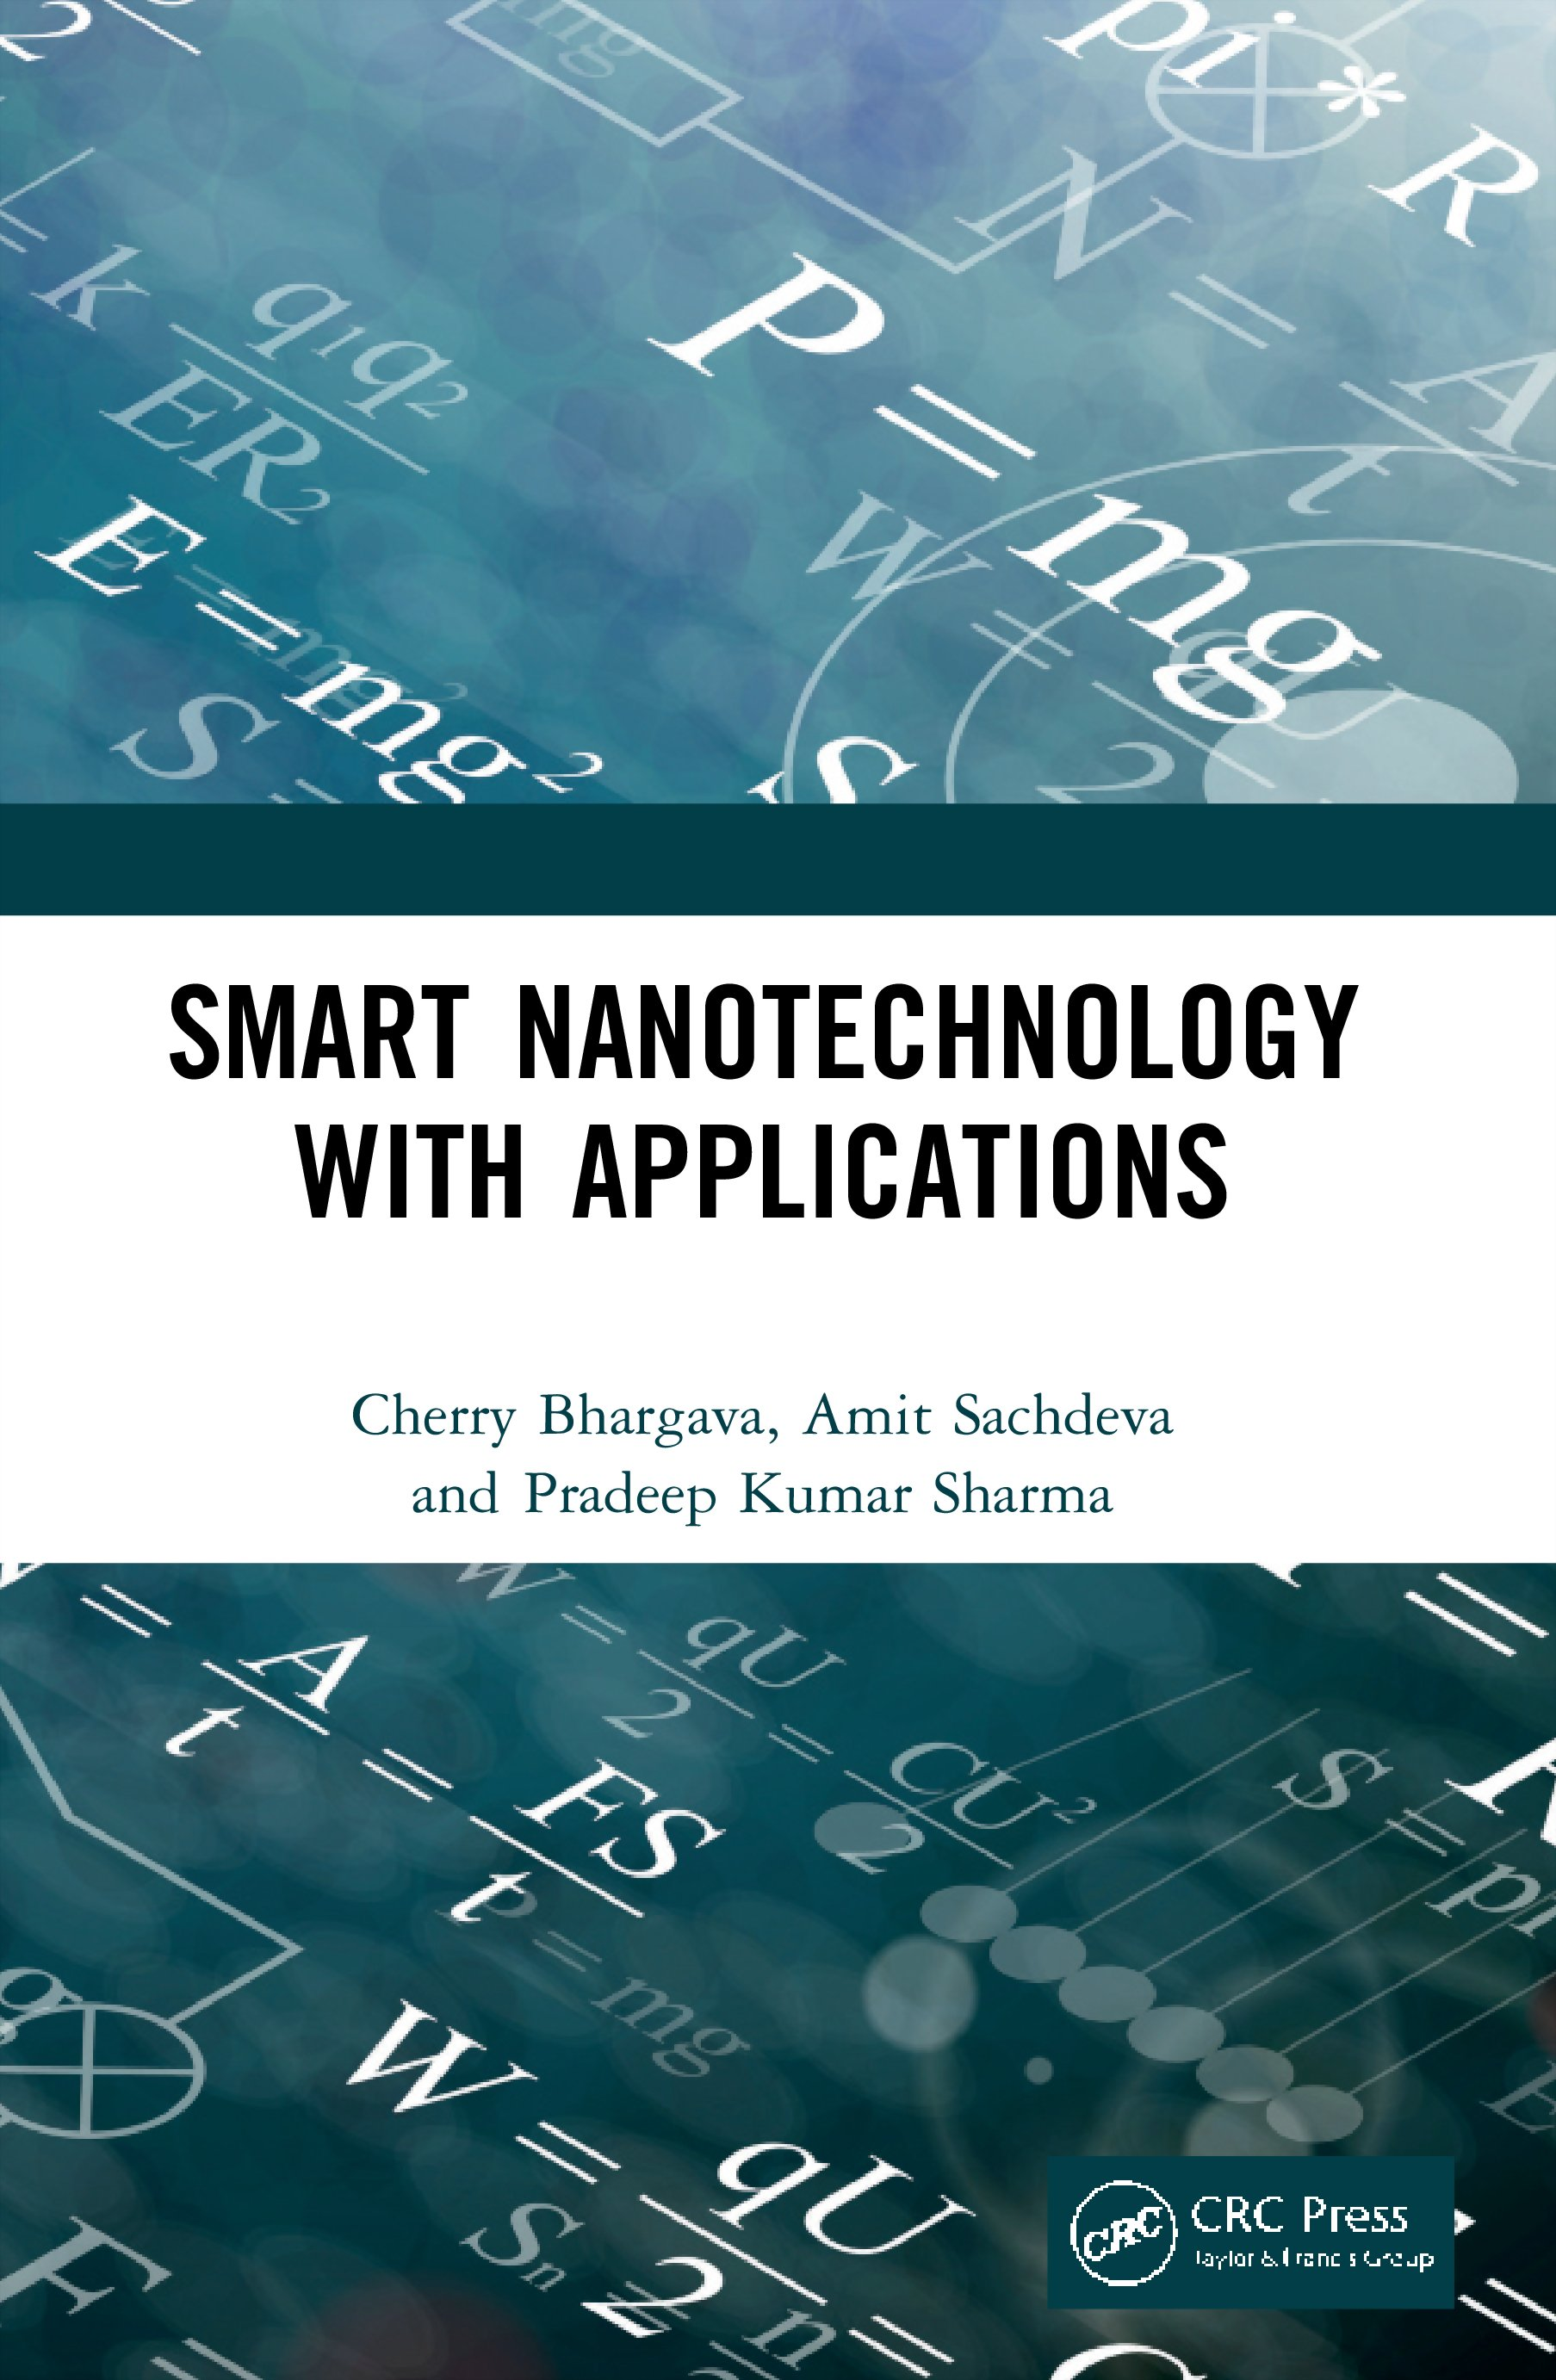 Nanotechnology Applications in the Sectors of Renewable Energy Sources